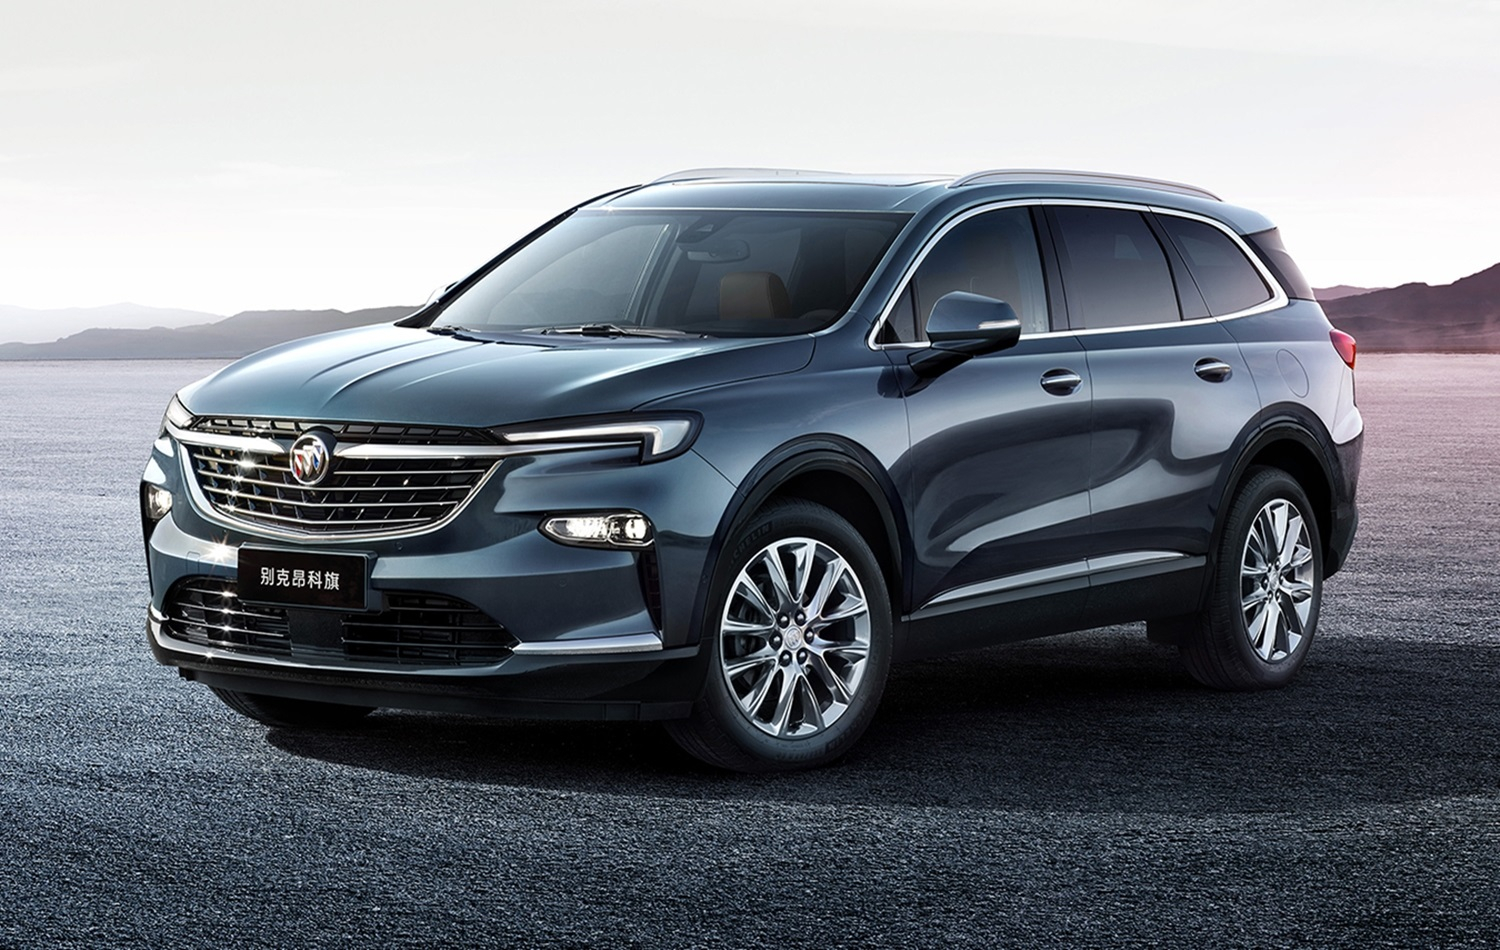 This Is The All-New Buick Enclave Crossover For China | Gm New 2022 Buick Enclave Configurations, Deals, Dashboard